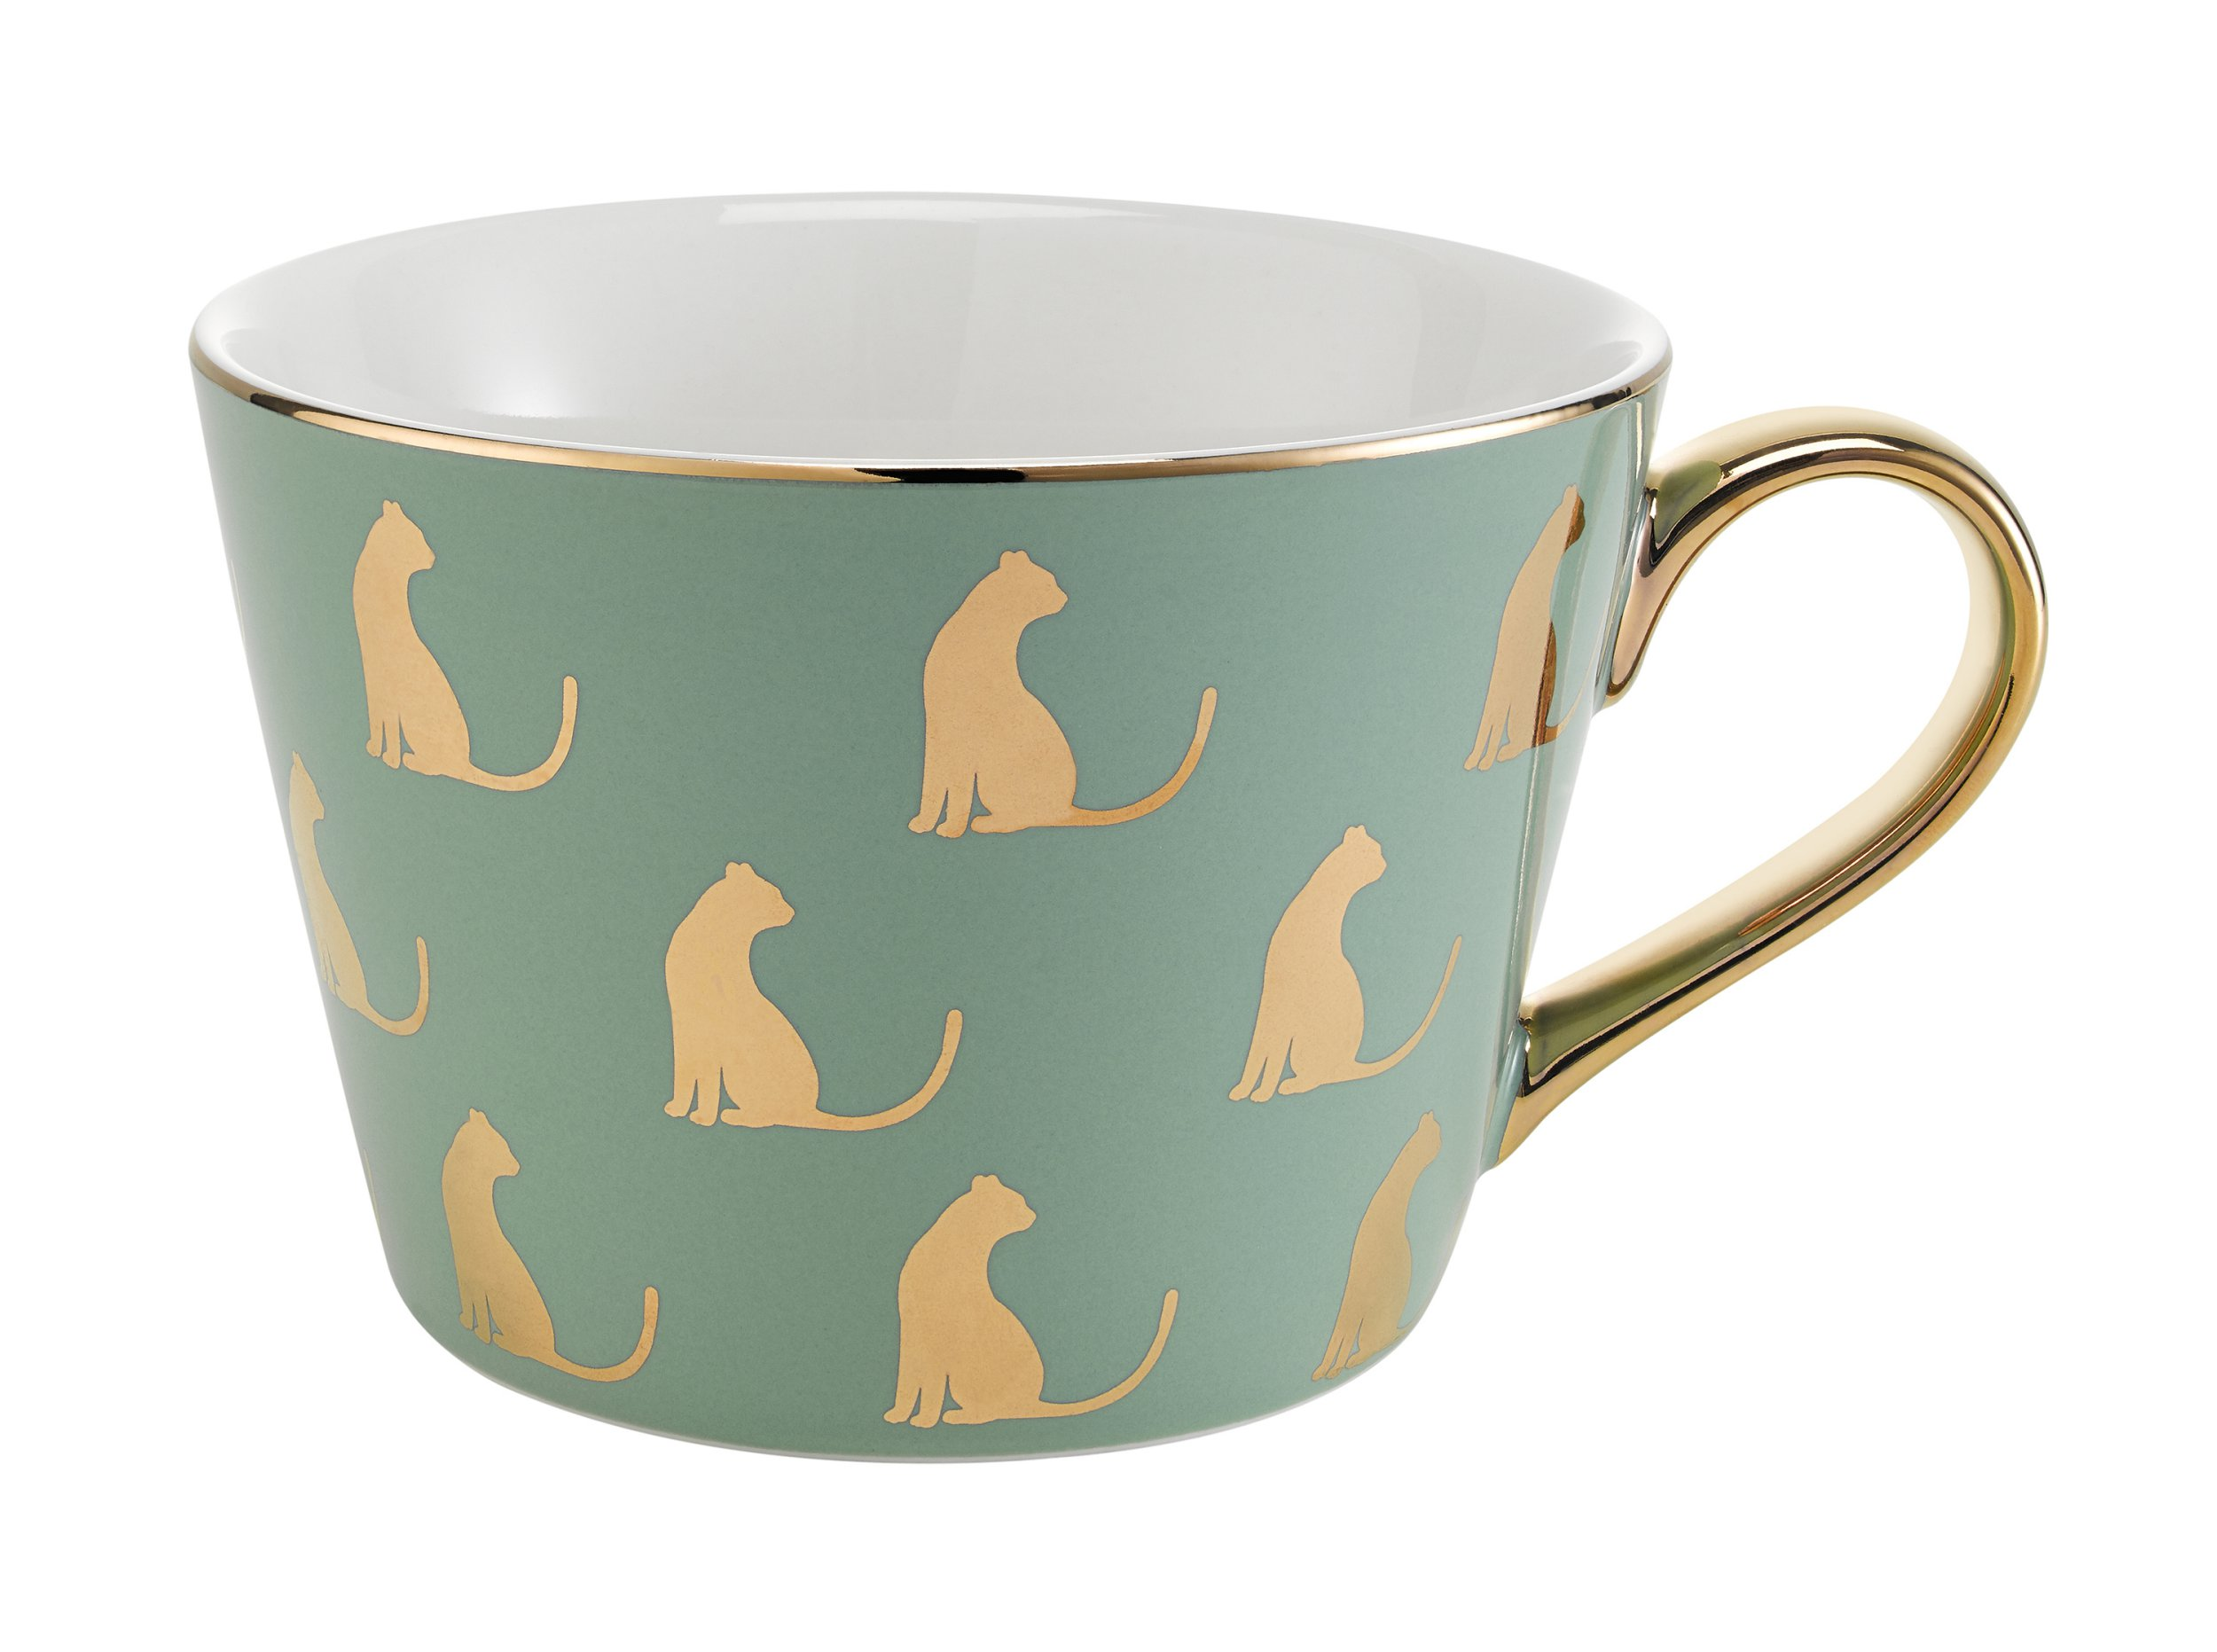 Fox & Ivy Green Cat Mug, £5, Tesco. Buy it with the Ownable app.